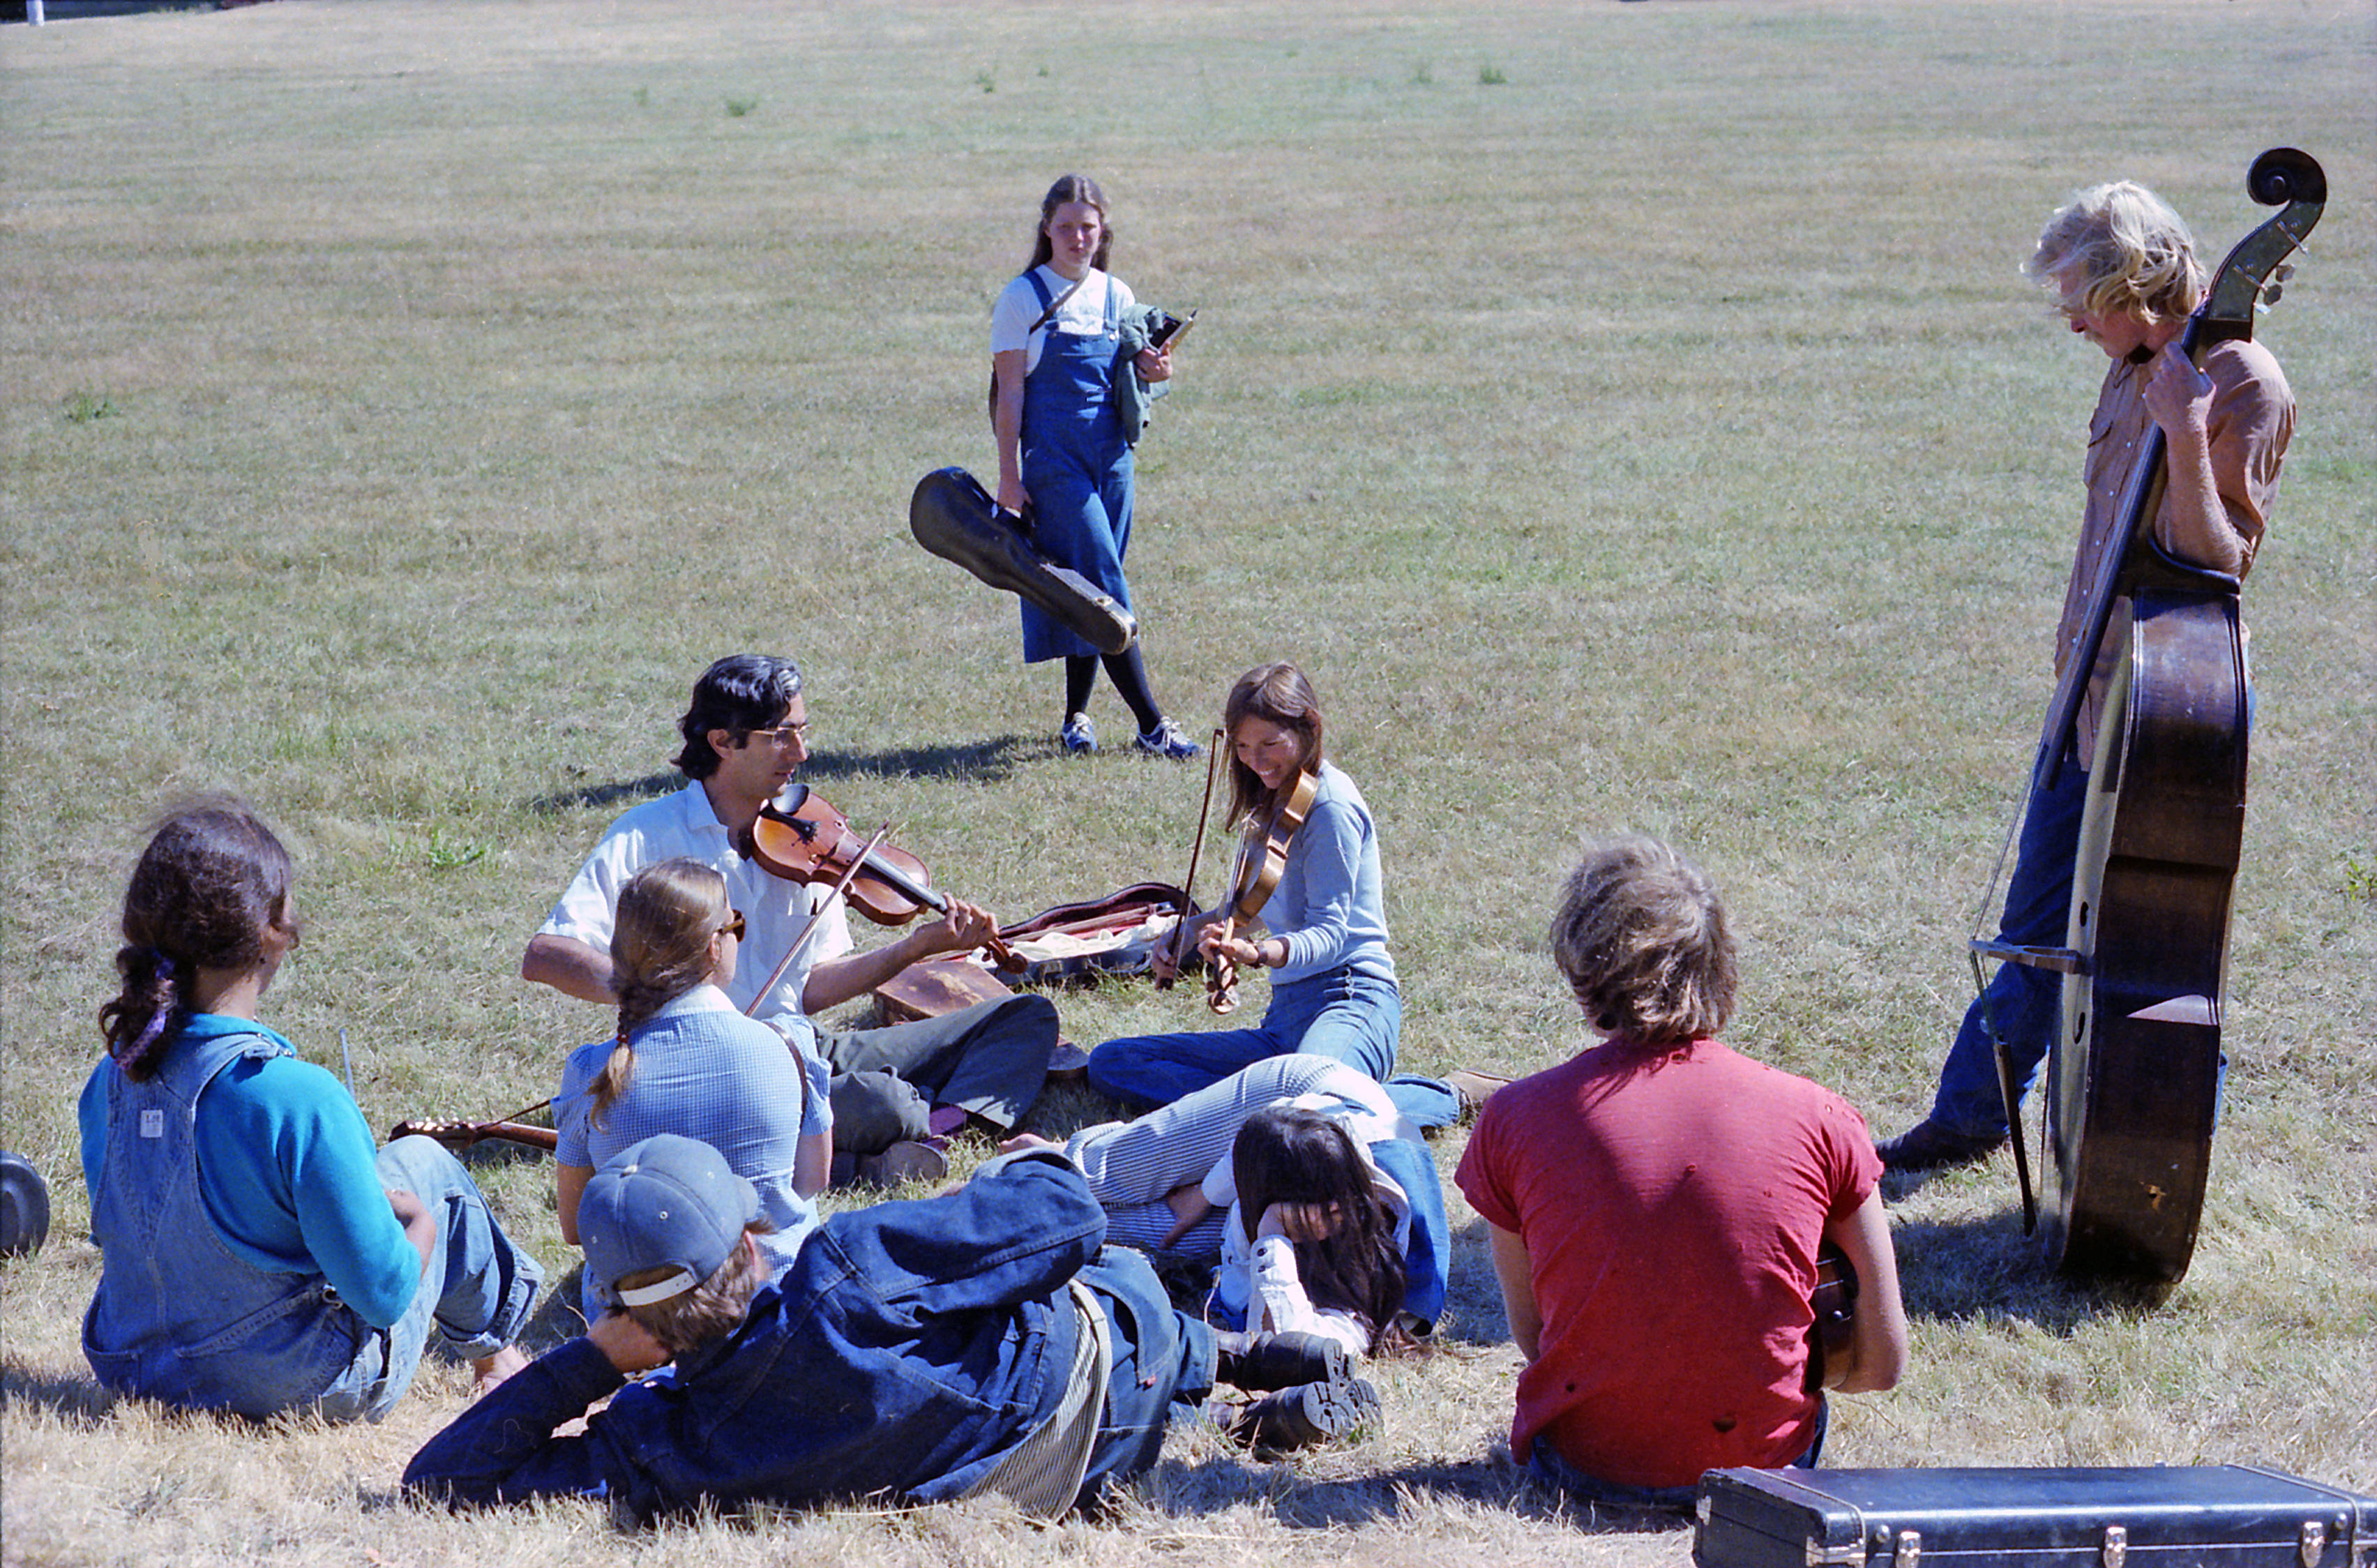 Alan Jabbour and Irene Herrman jam session on the grass